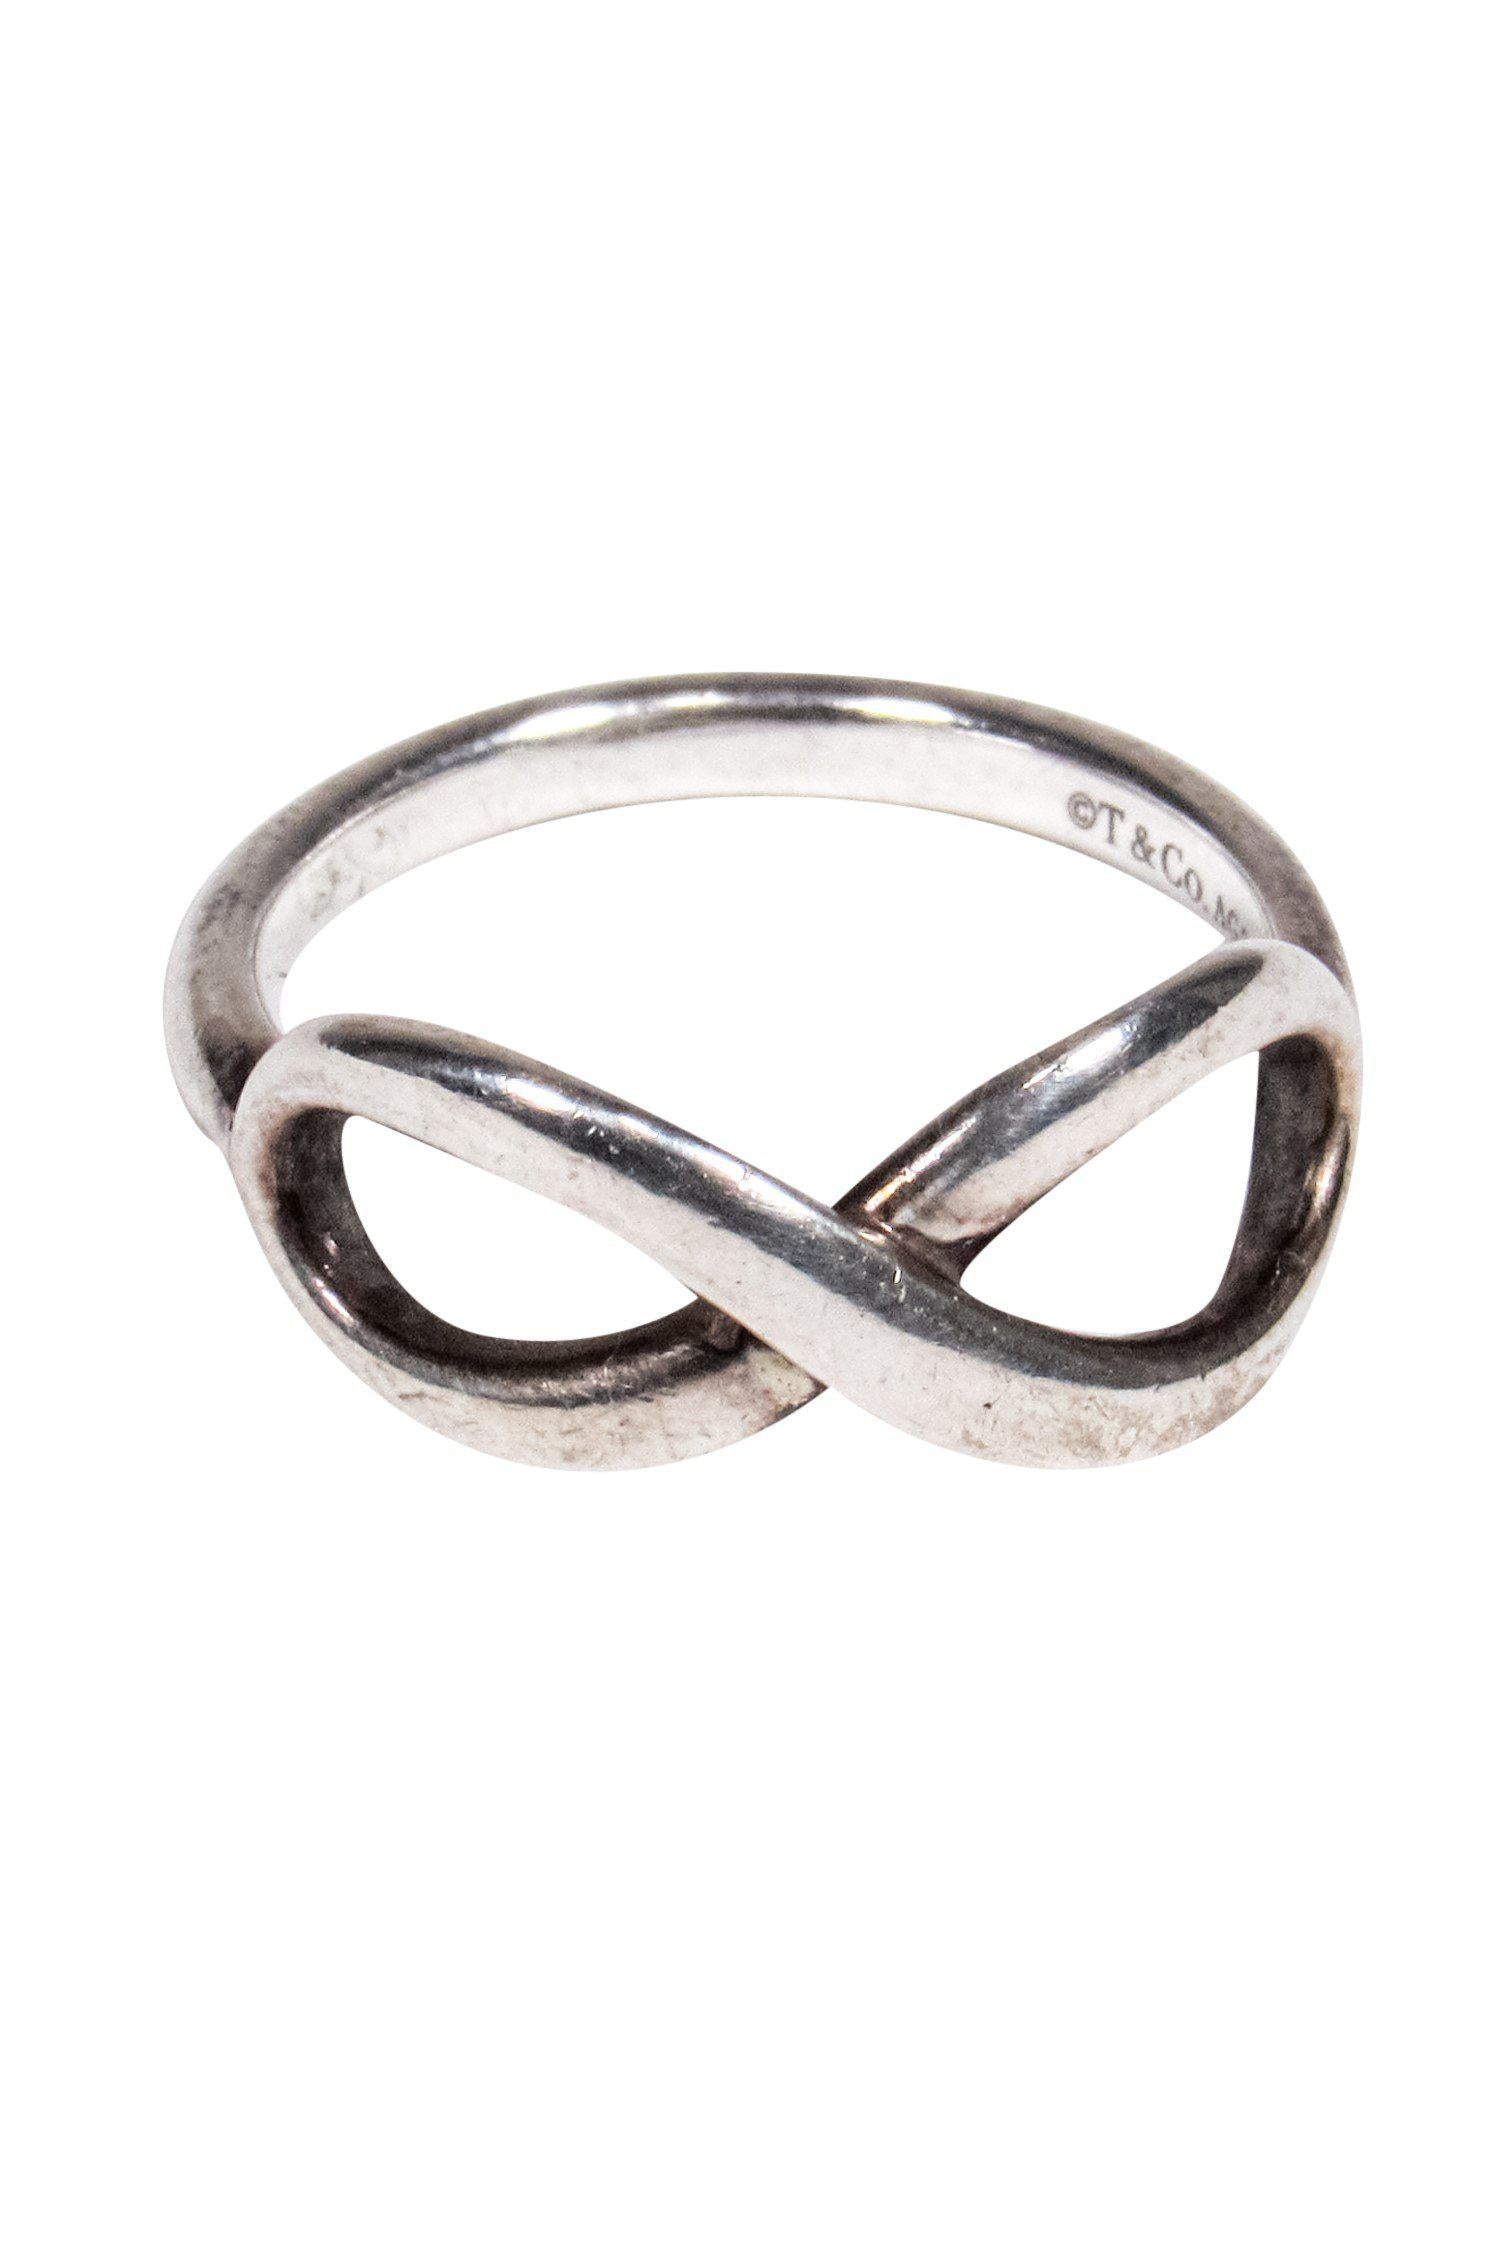 Tiffany & Co. - Silver Infinity Band Ring Sz 4